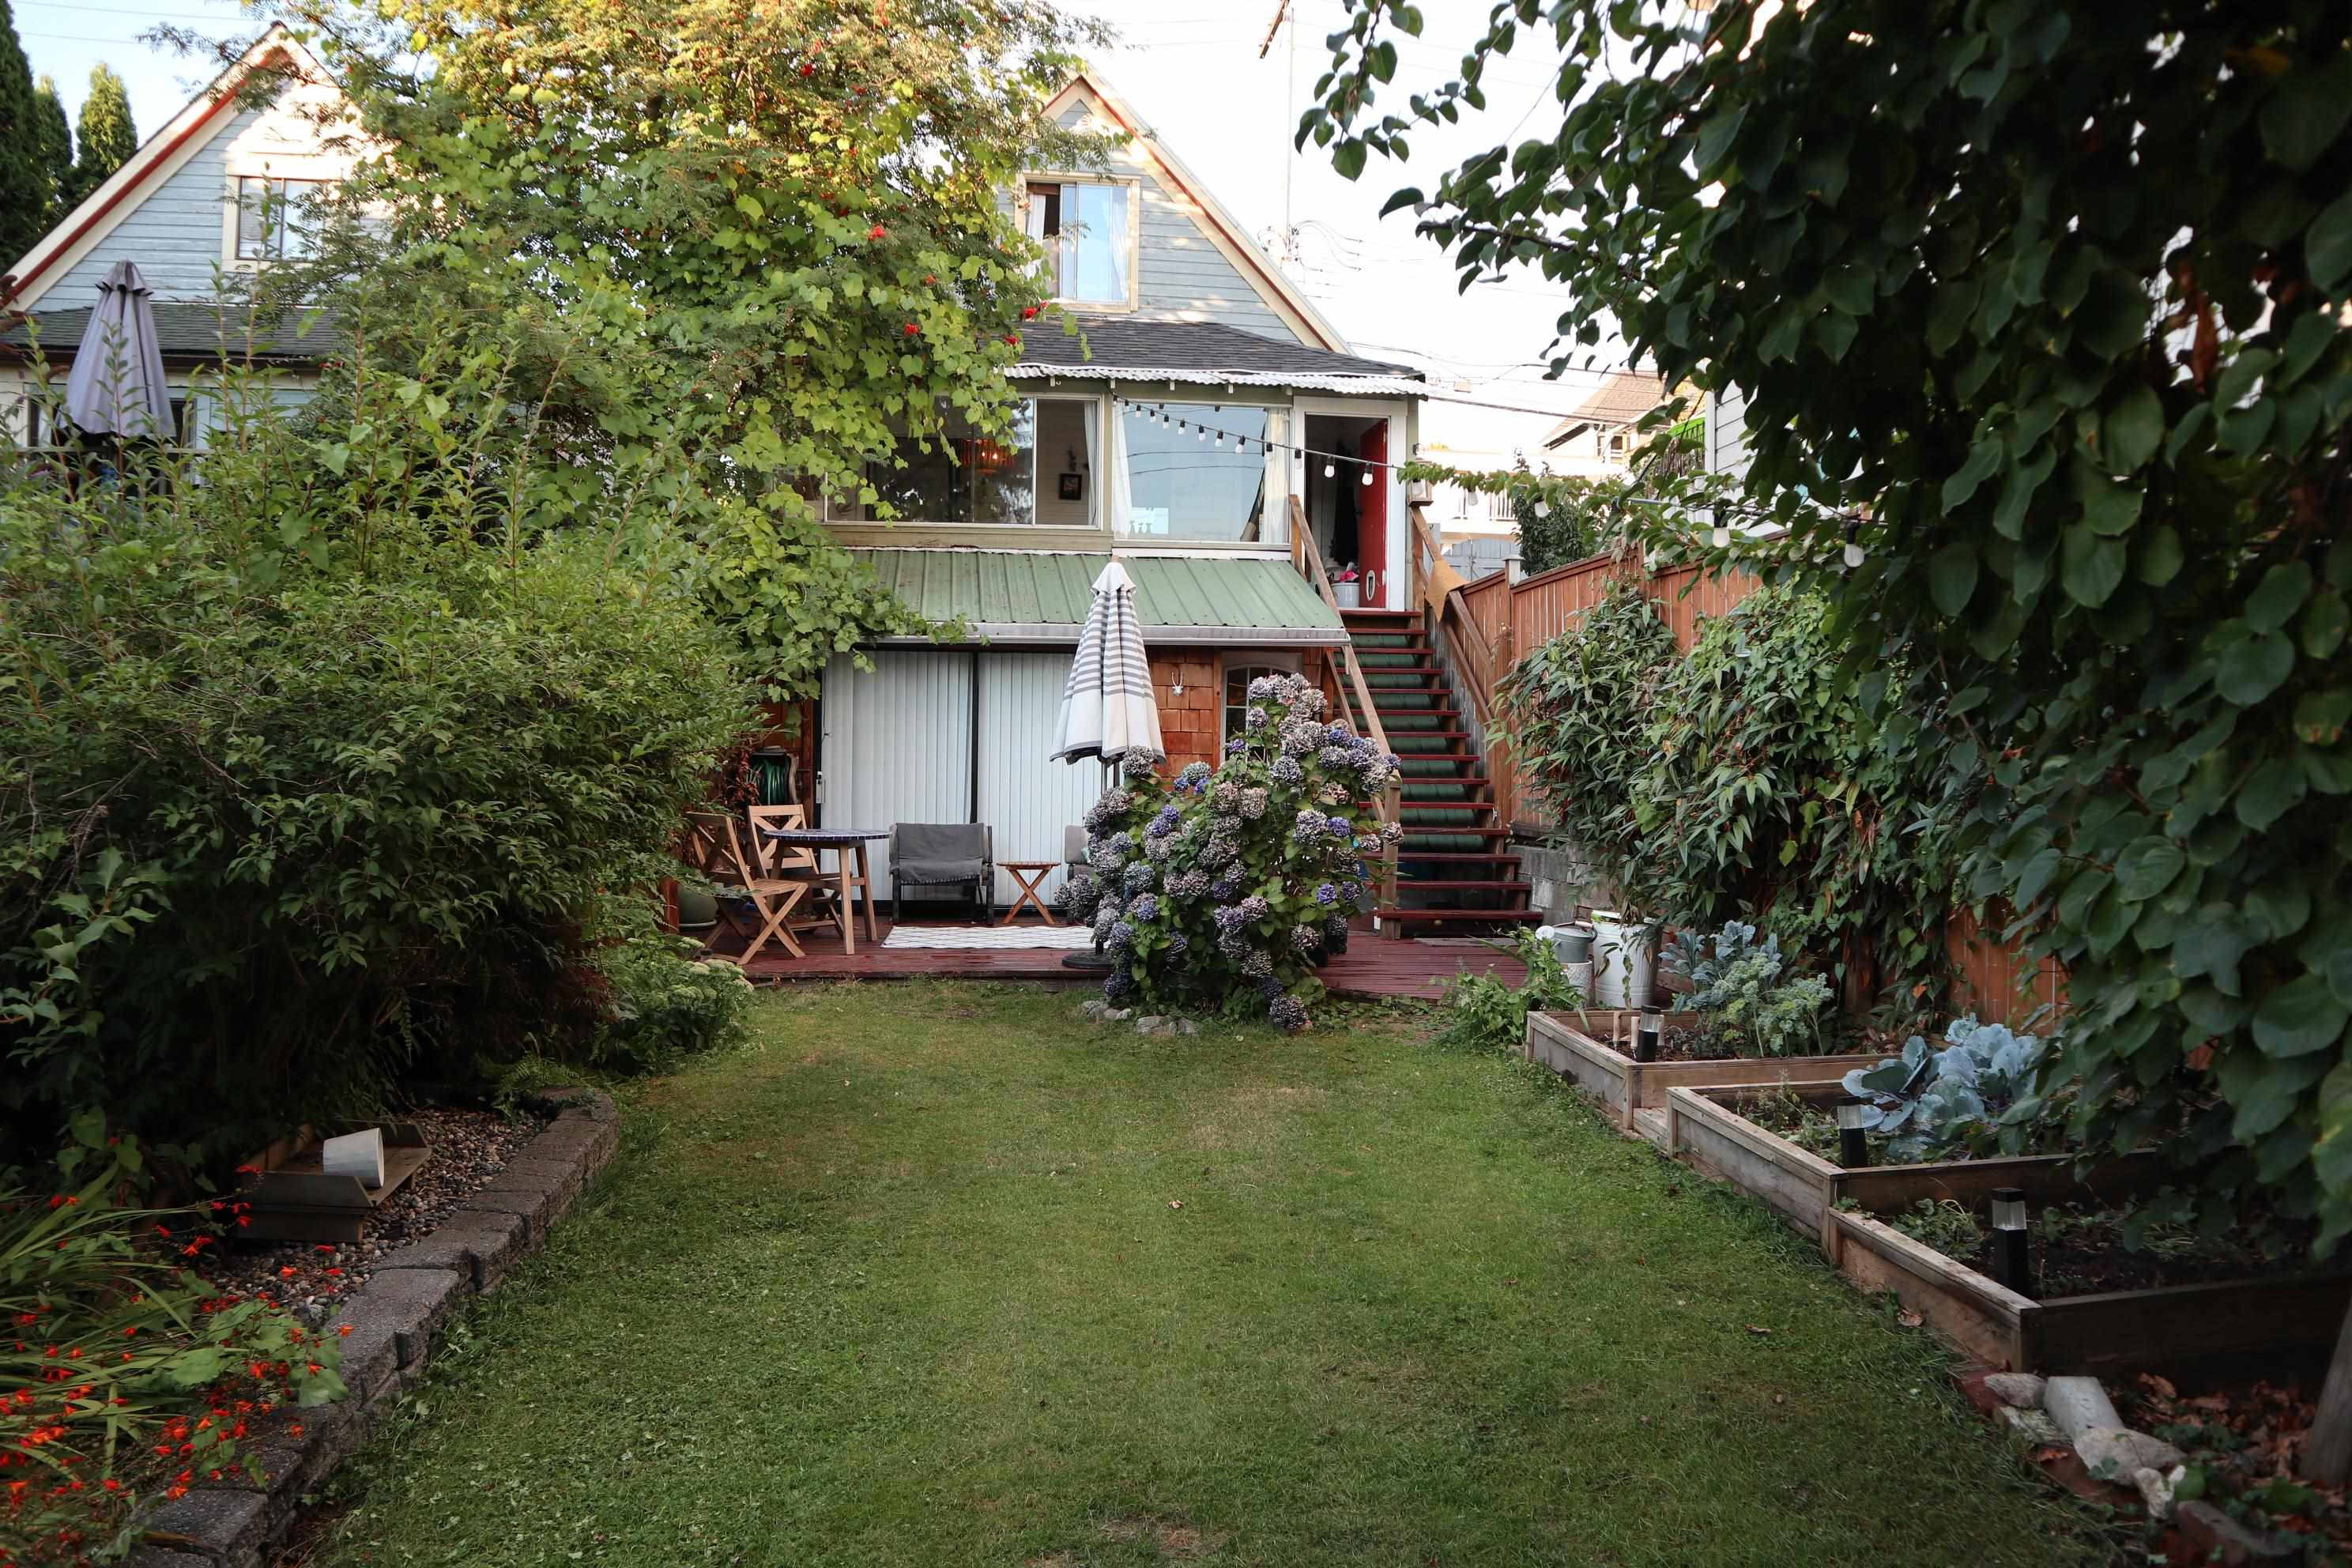 224 E 3RD STREET - Lower Lonsdale House/Single Family for sale, 2 Bedrooms (R2622022) - #1